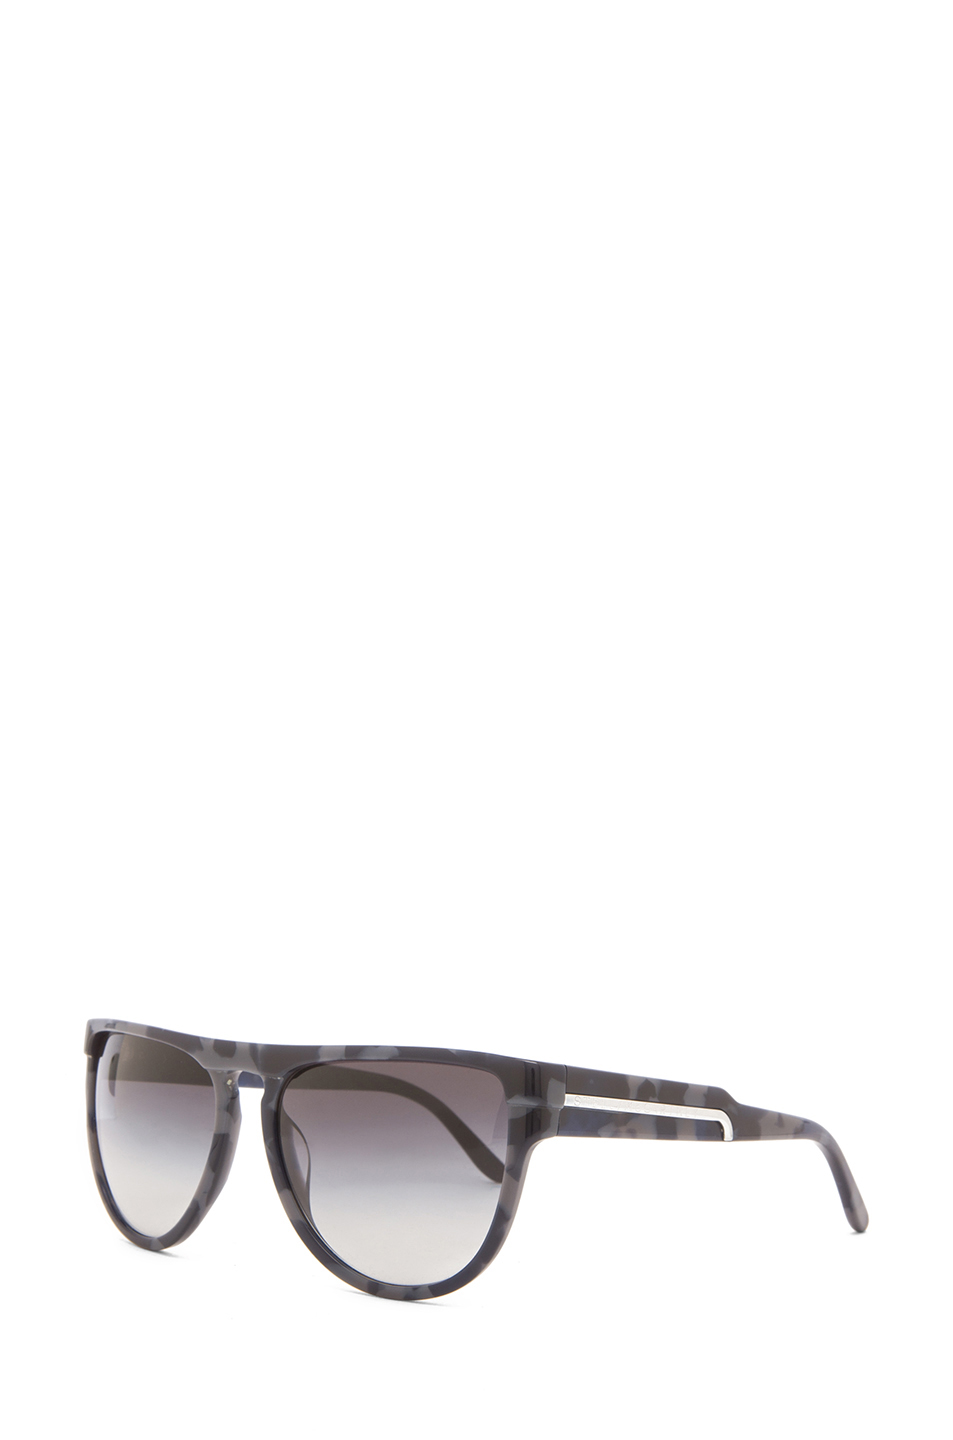 Stella McCartney|Sunglasses in Blue Tortoise